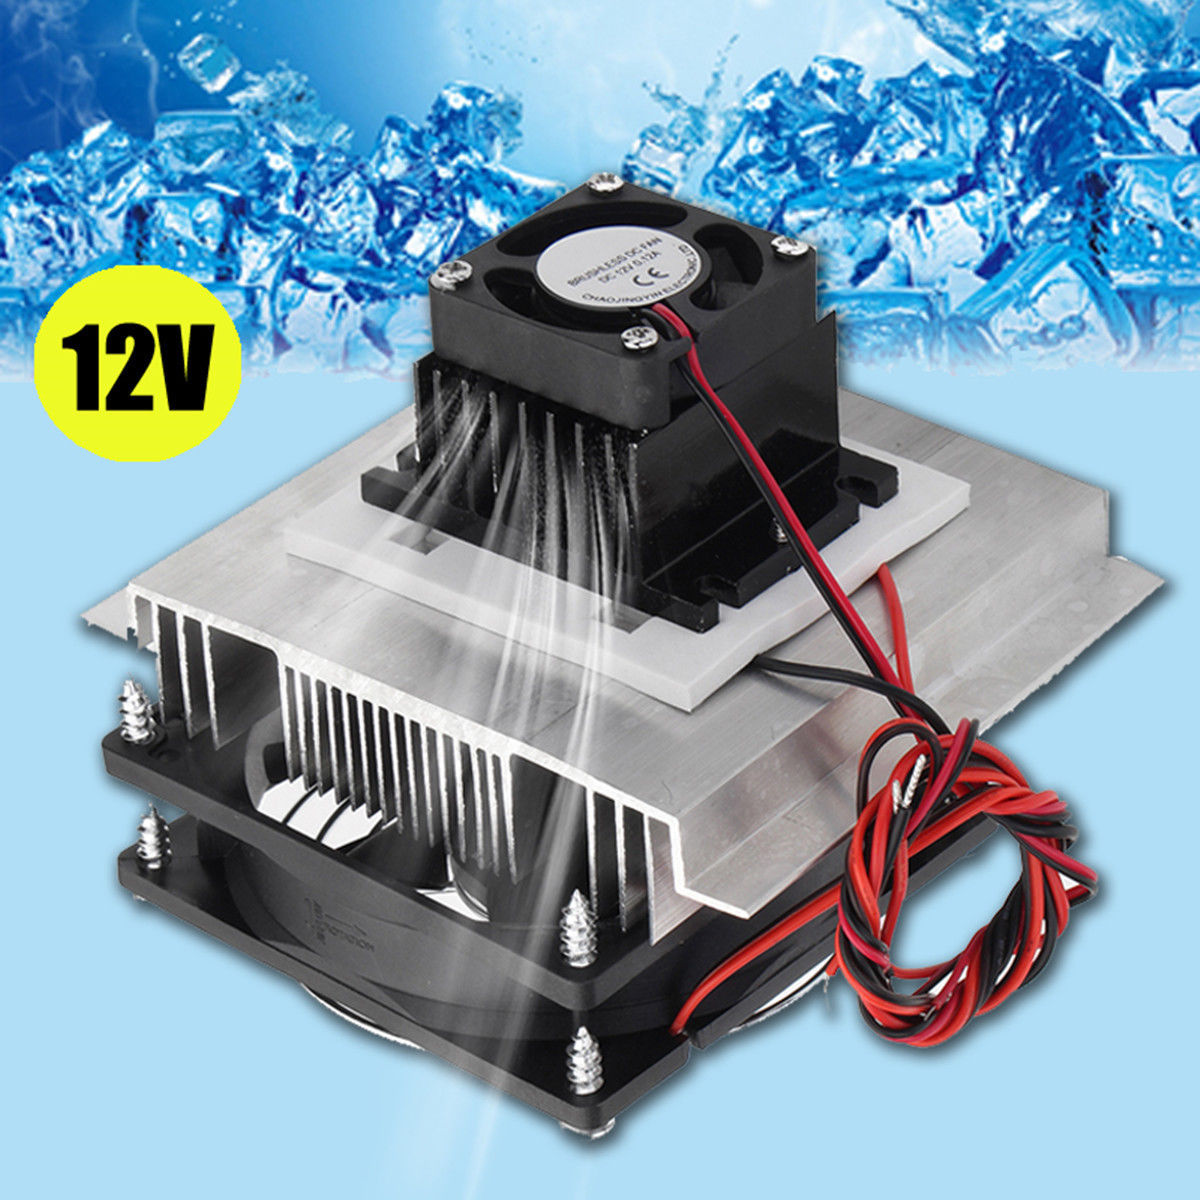 12v 6a Thermoelectric Peltier Refrigeration Cooling System Kit Cooler Fan Diy12v 6a Thermoelectric Peltier Refrigeration Cooling System Kit Cooler Fan Diy